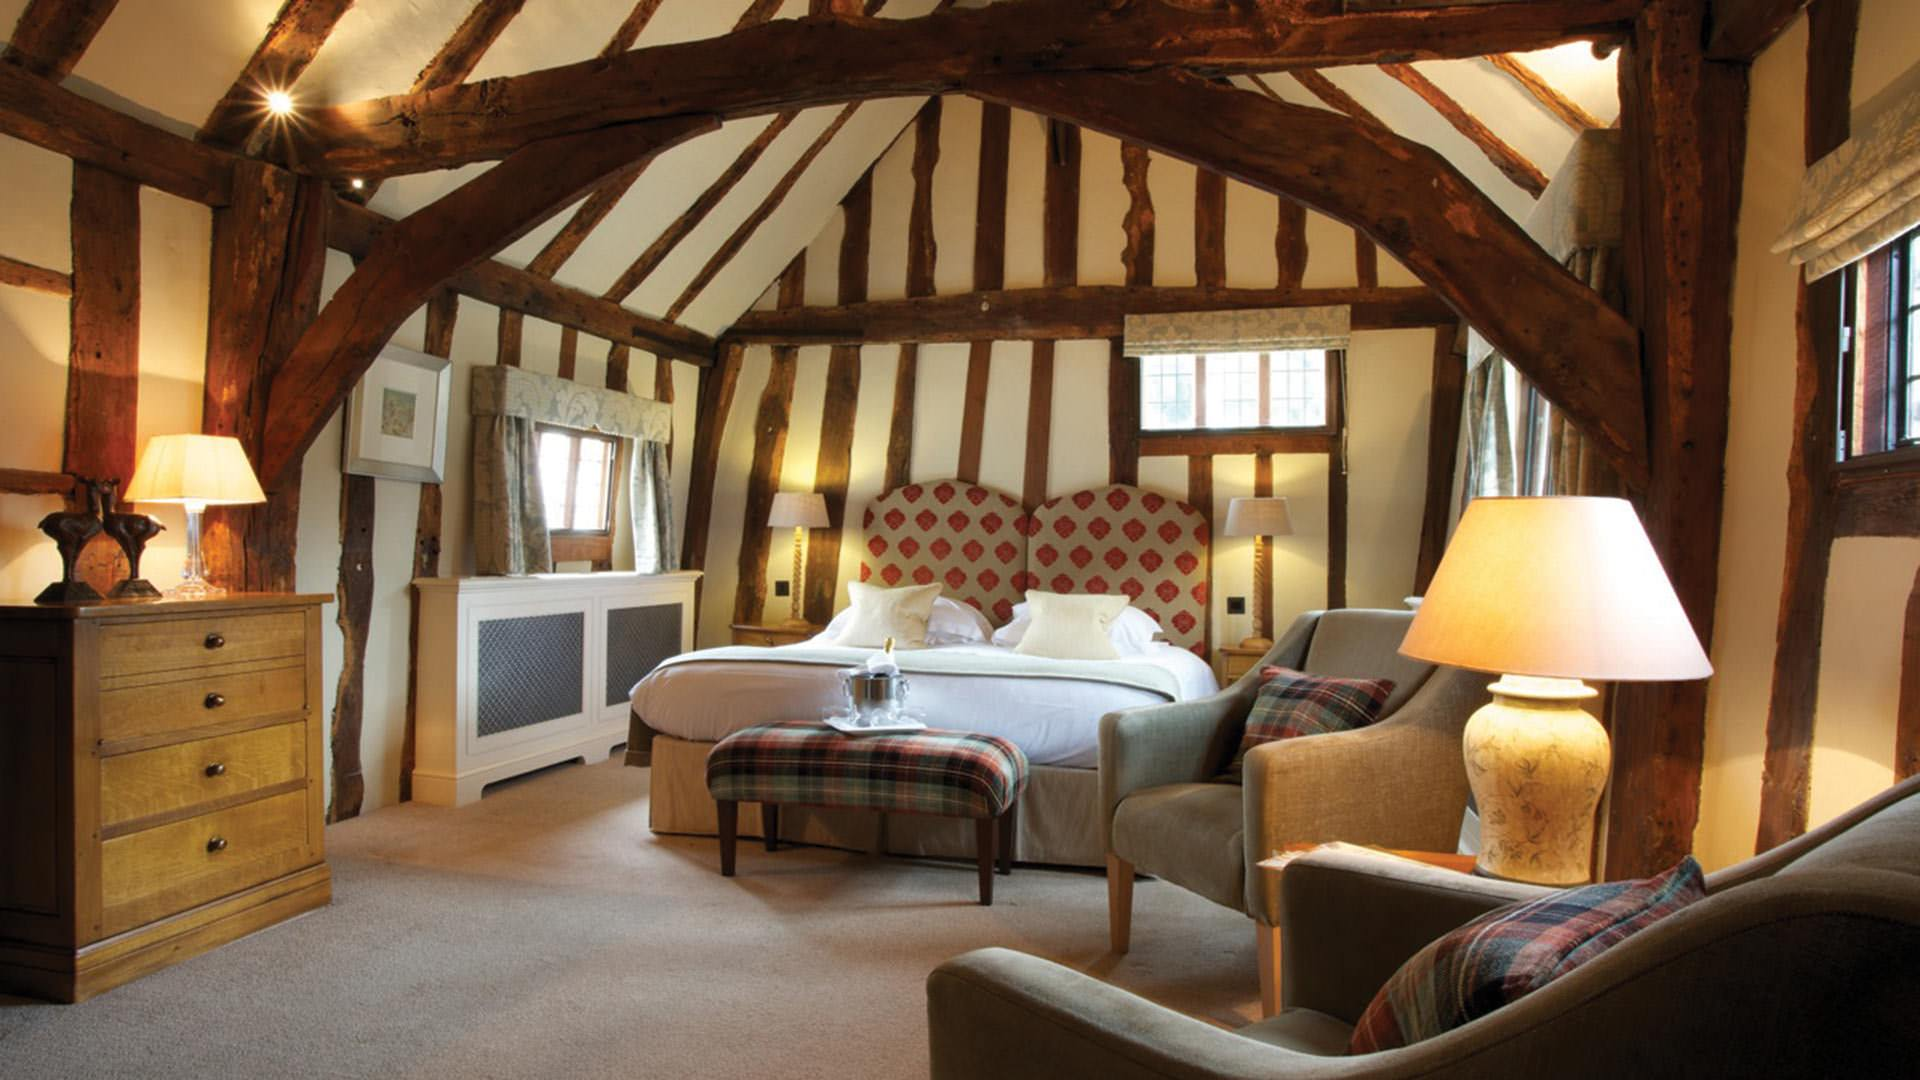 The swan hotel at lavenham luxyry hotels suffolk pride for Small hotels of the world uk